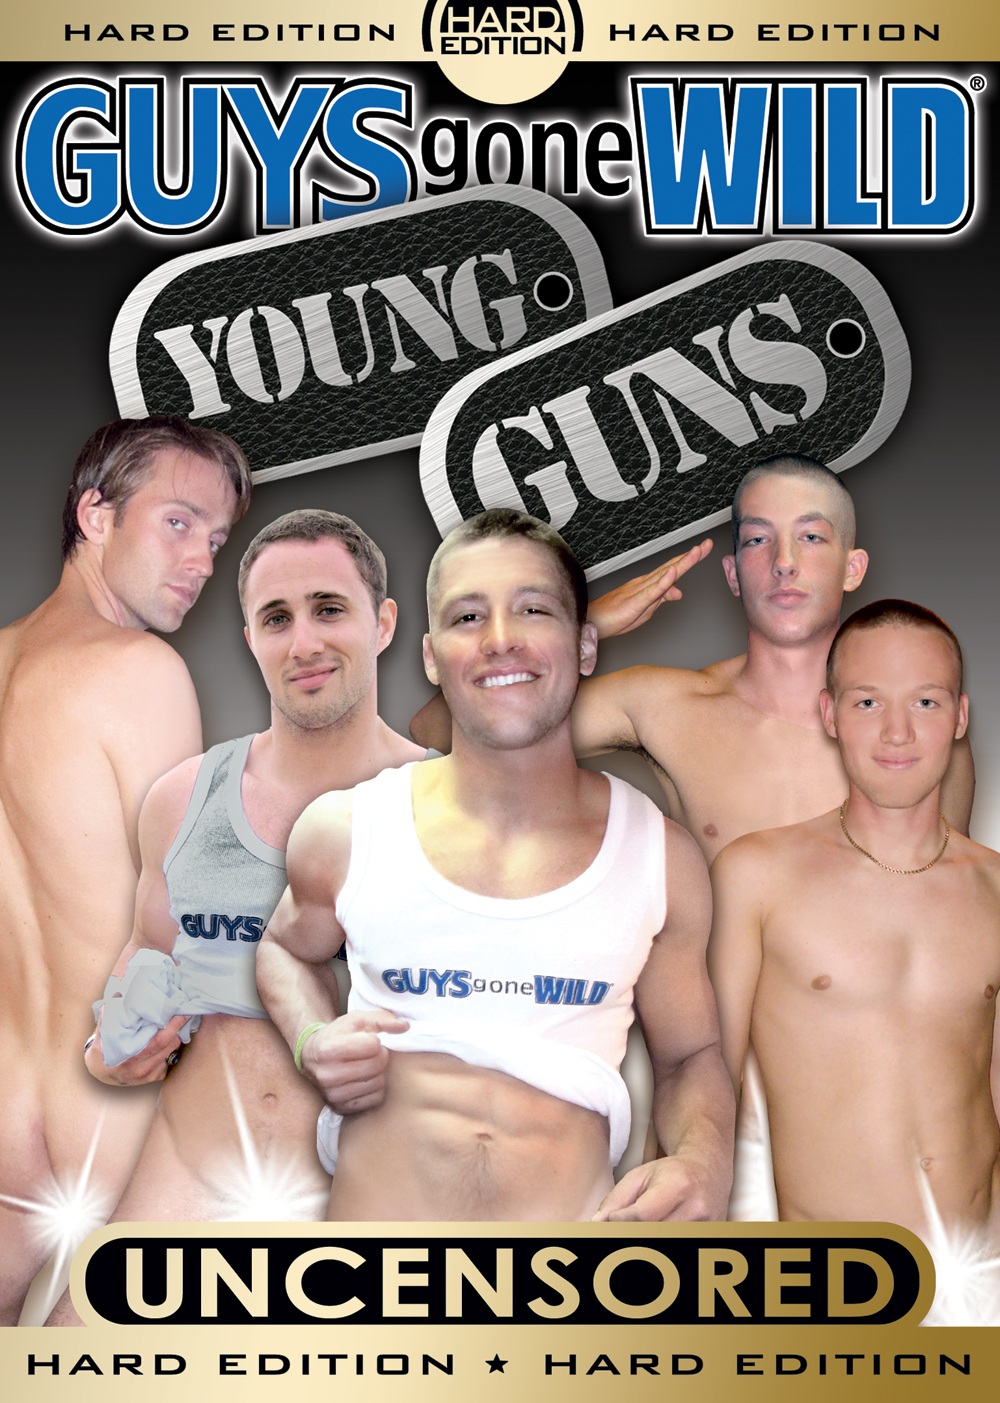 Guys Gone Wild: Young Guns